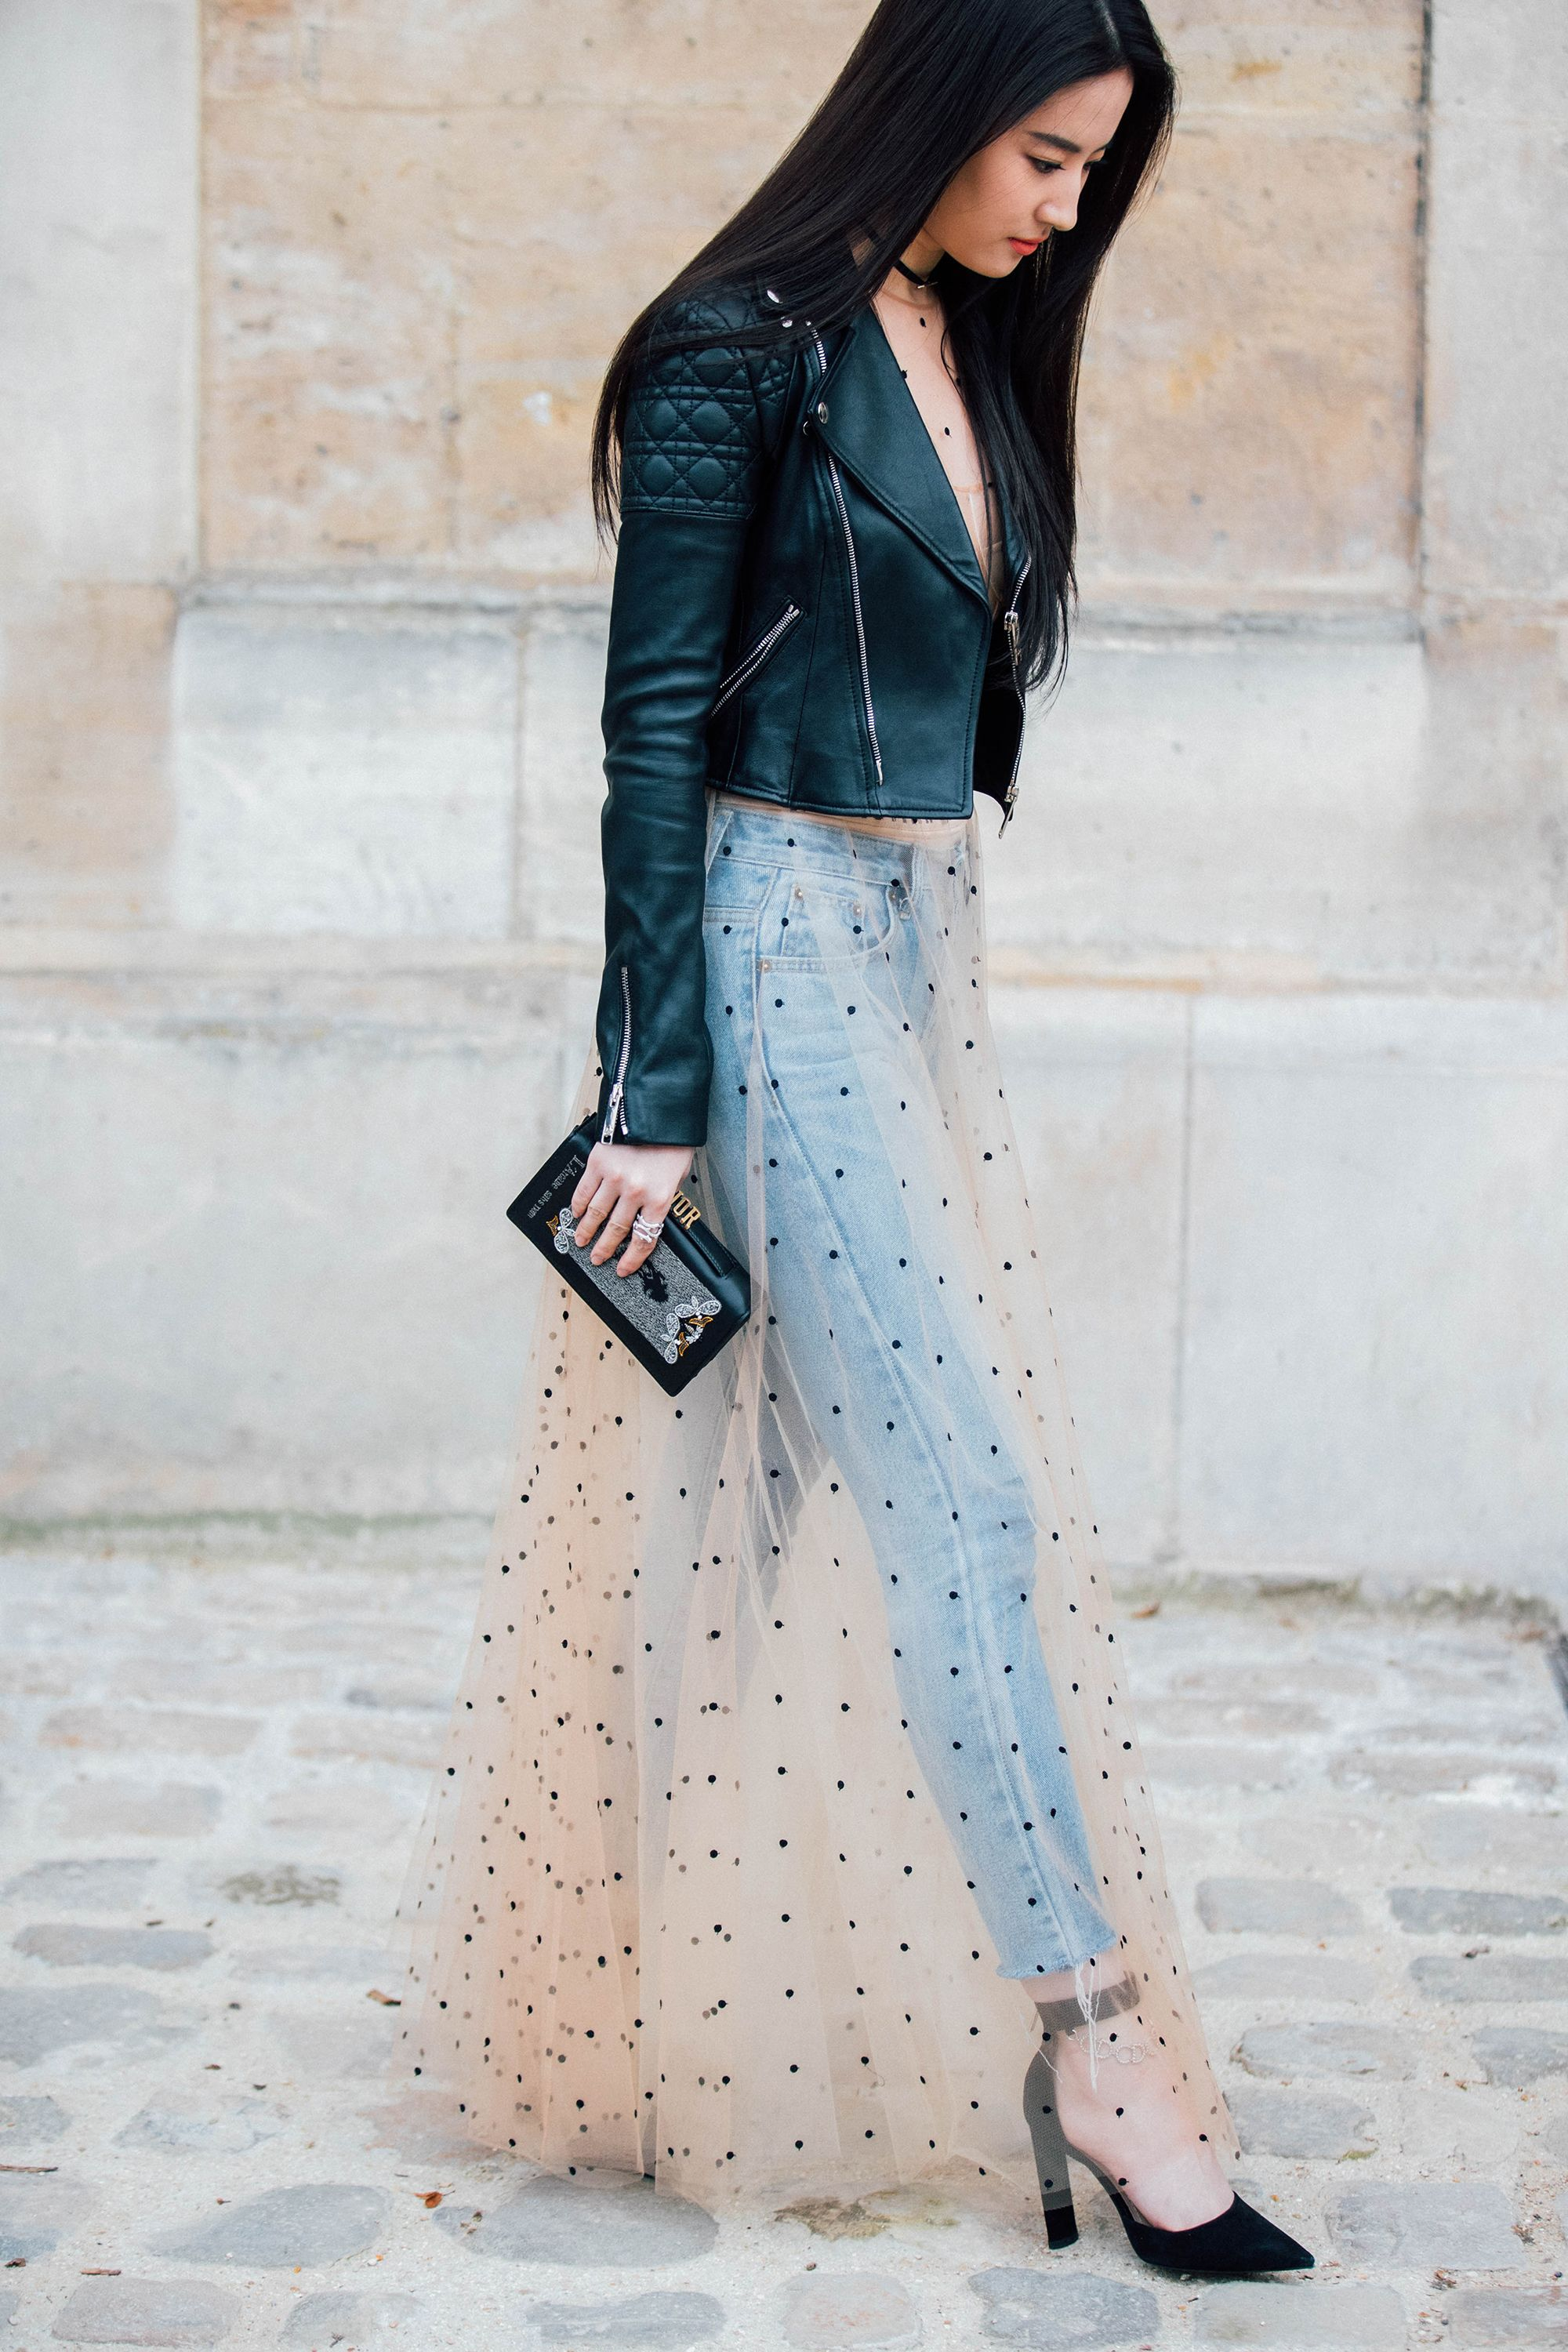 Paris Fashion Week Street Style | Street styles, Fashion ...